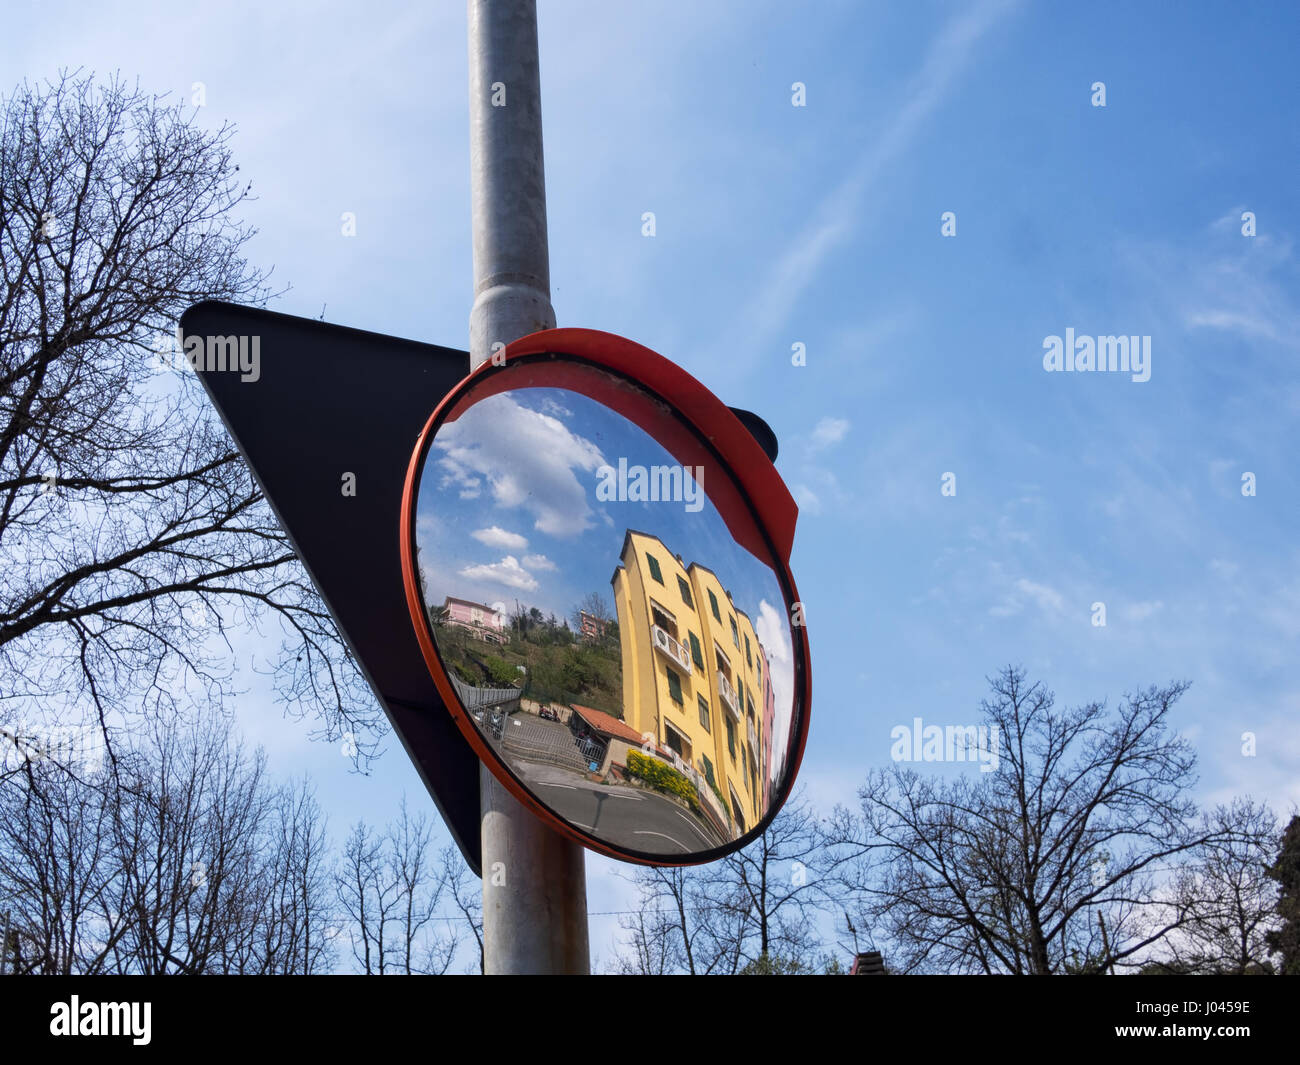 Street furniture, mirror. Fairly generic view, Italy. - Stock Image